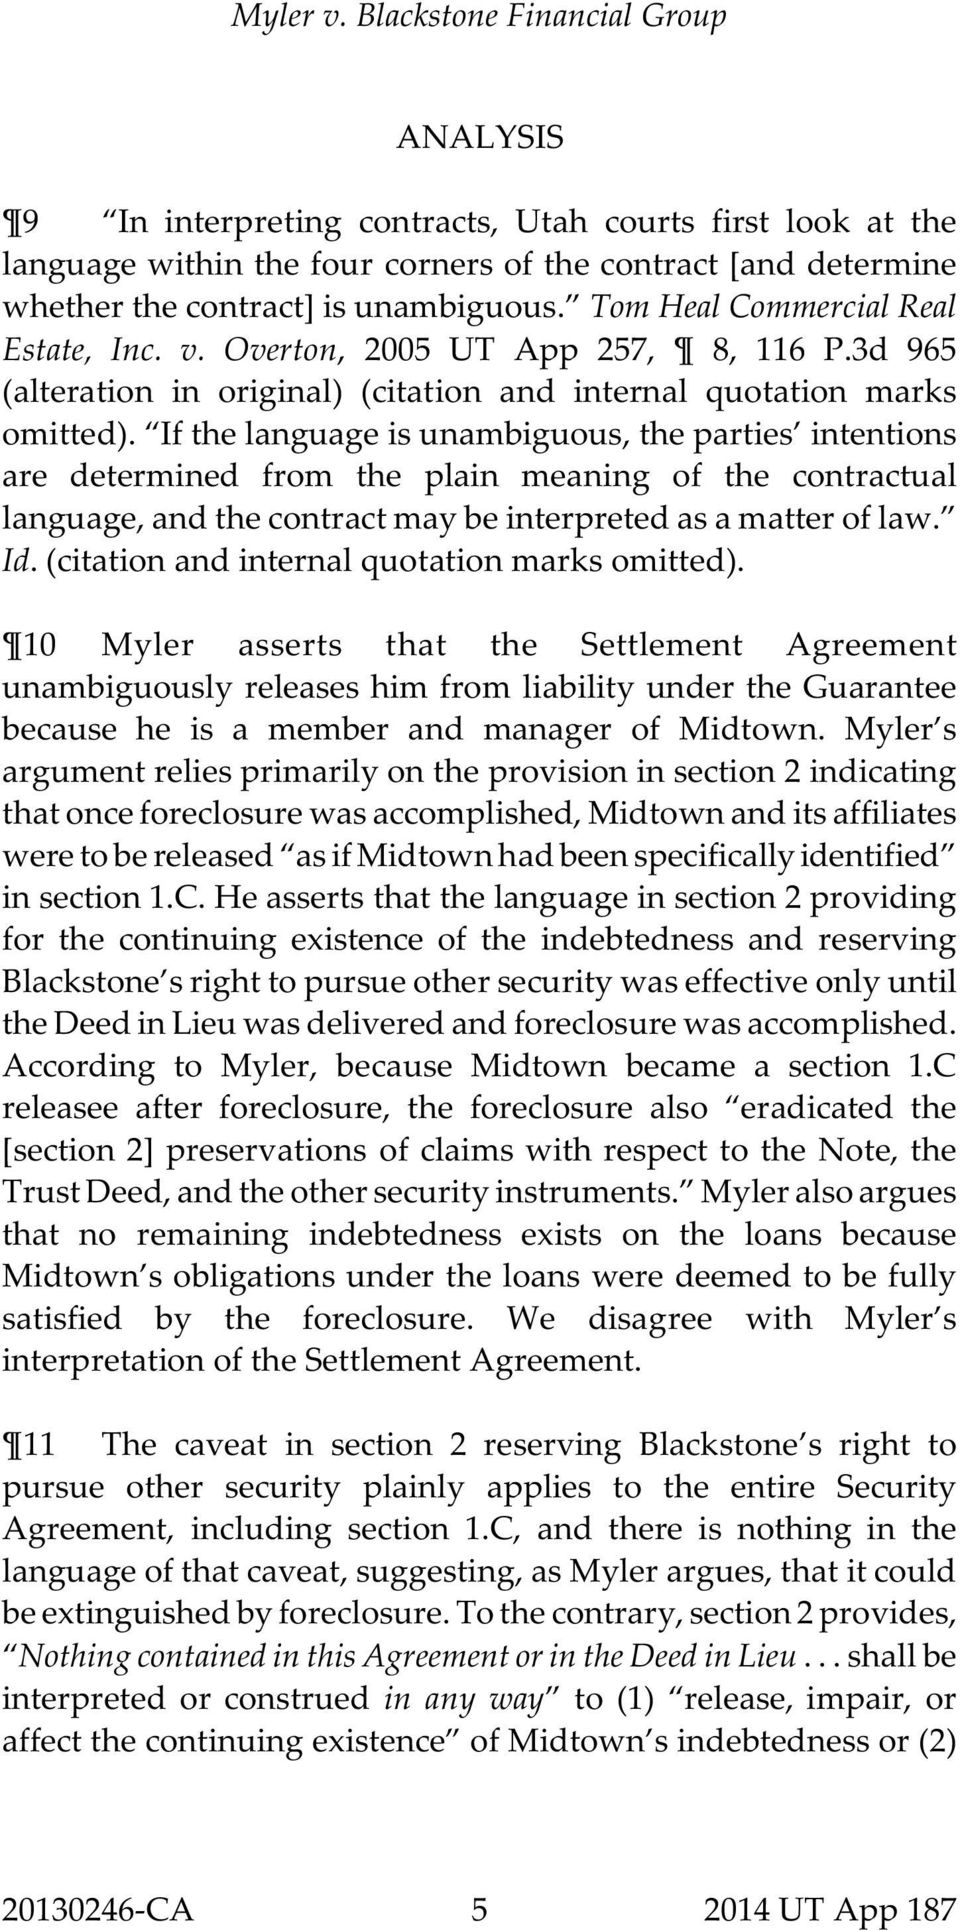 If the language is unambiguous, the parties intentions are determined from the plain meaning of the contractual language, and the contract may be interpreted as a matter of law. Id.